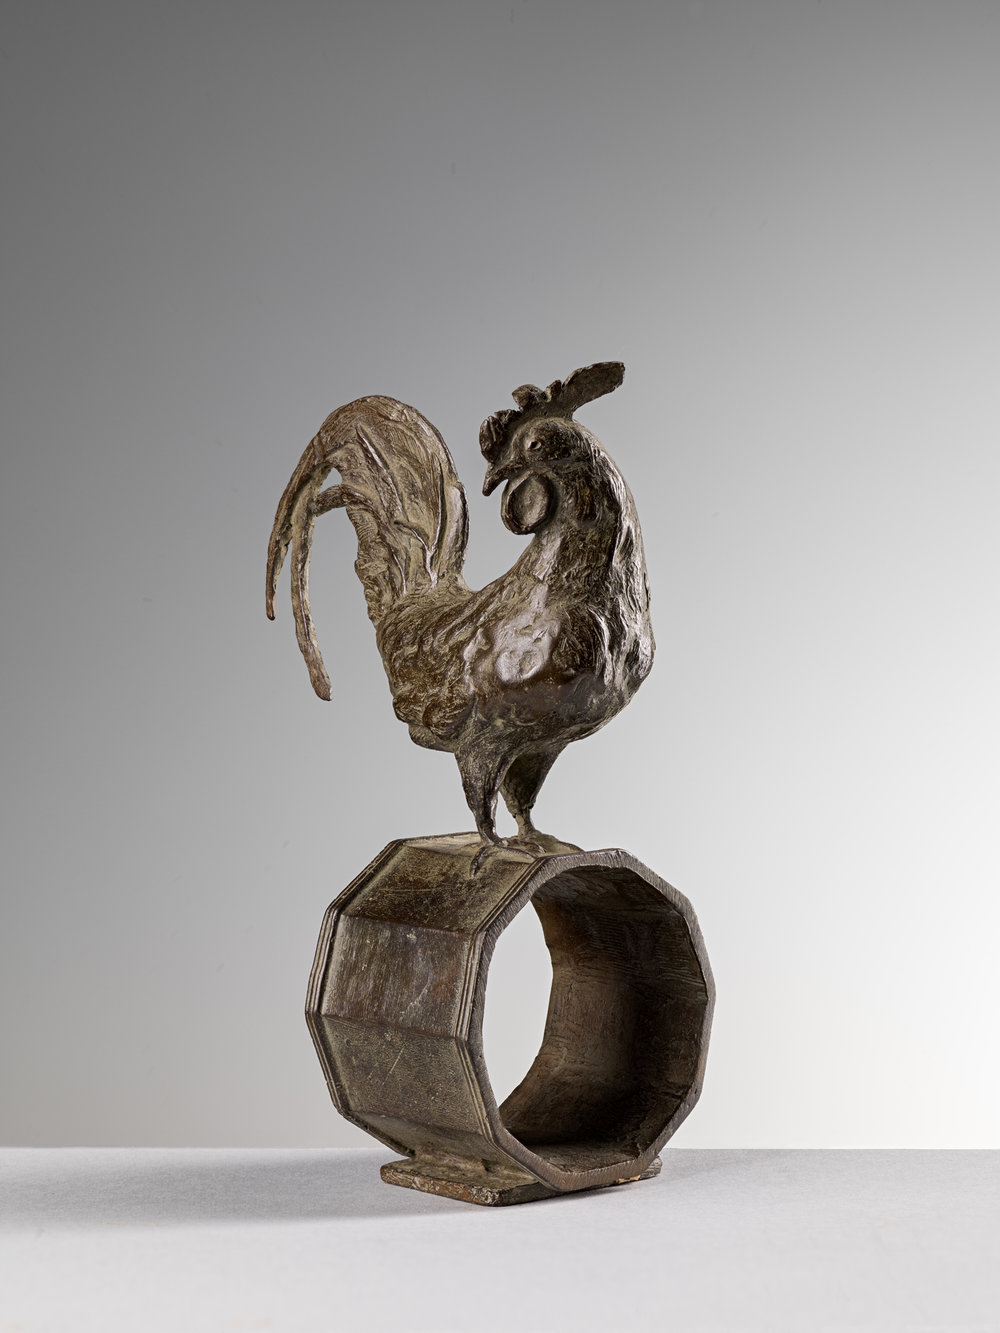 16. Cockerel Napkin Ring, 'Gallo' by Nicola Lazzari 12cm H x 9cm W x 5cm D, .jpg